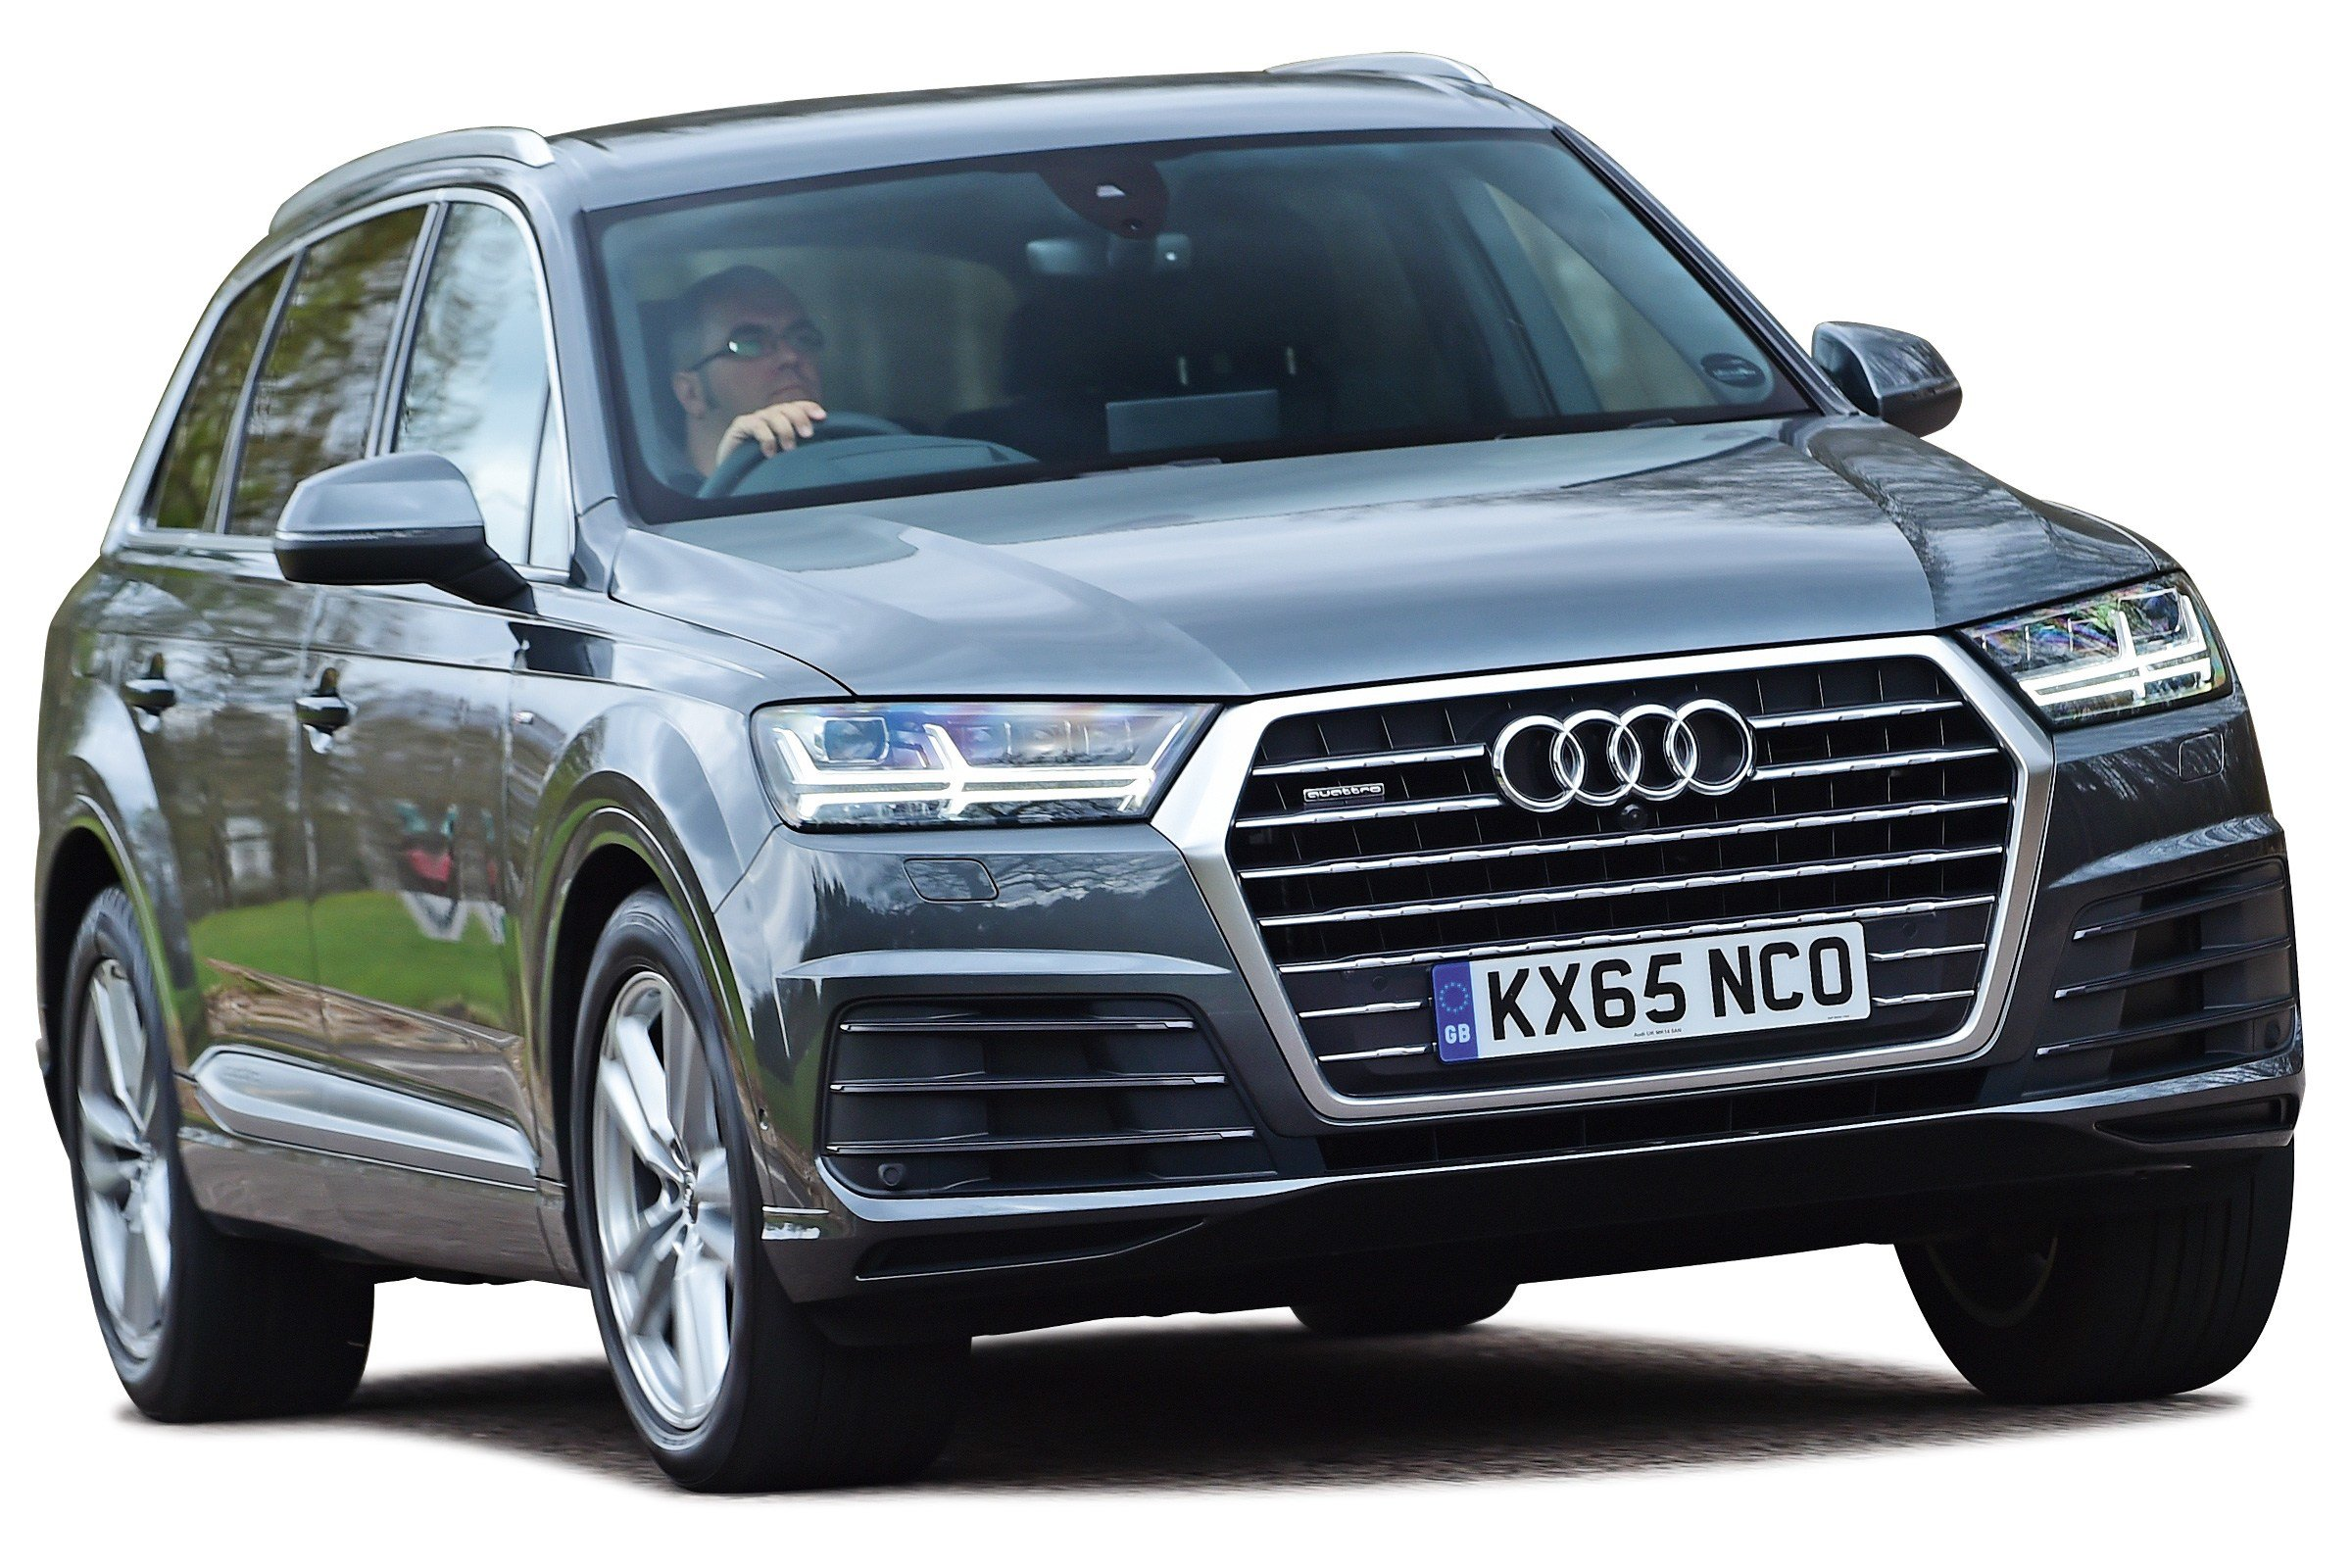 Latest Audi Q7 Suv Review Carbuyer Free Download